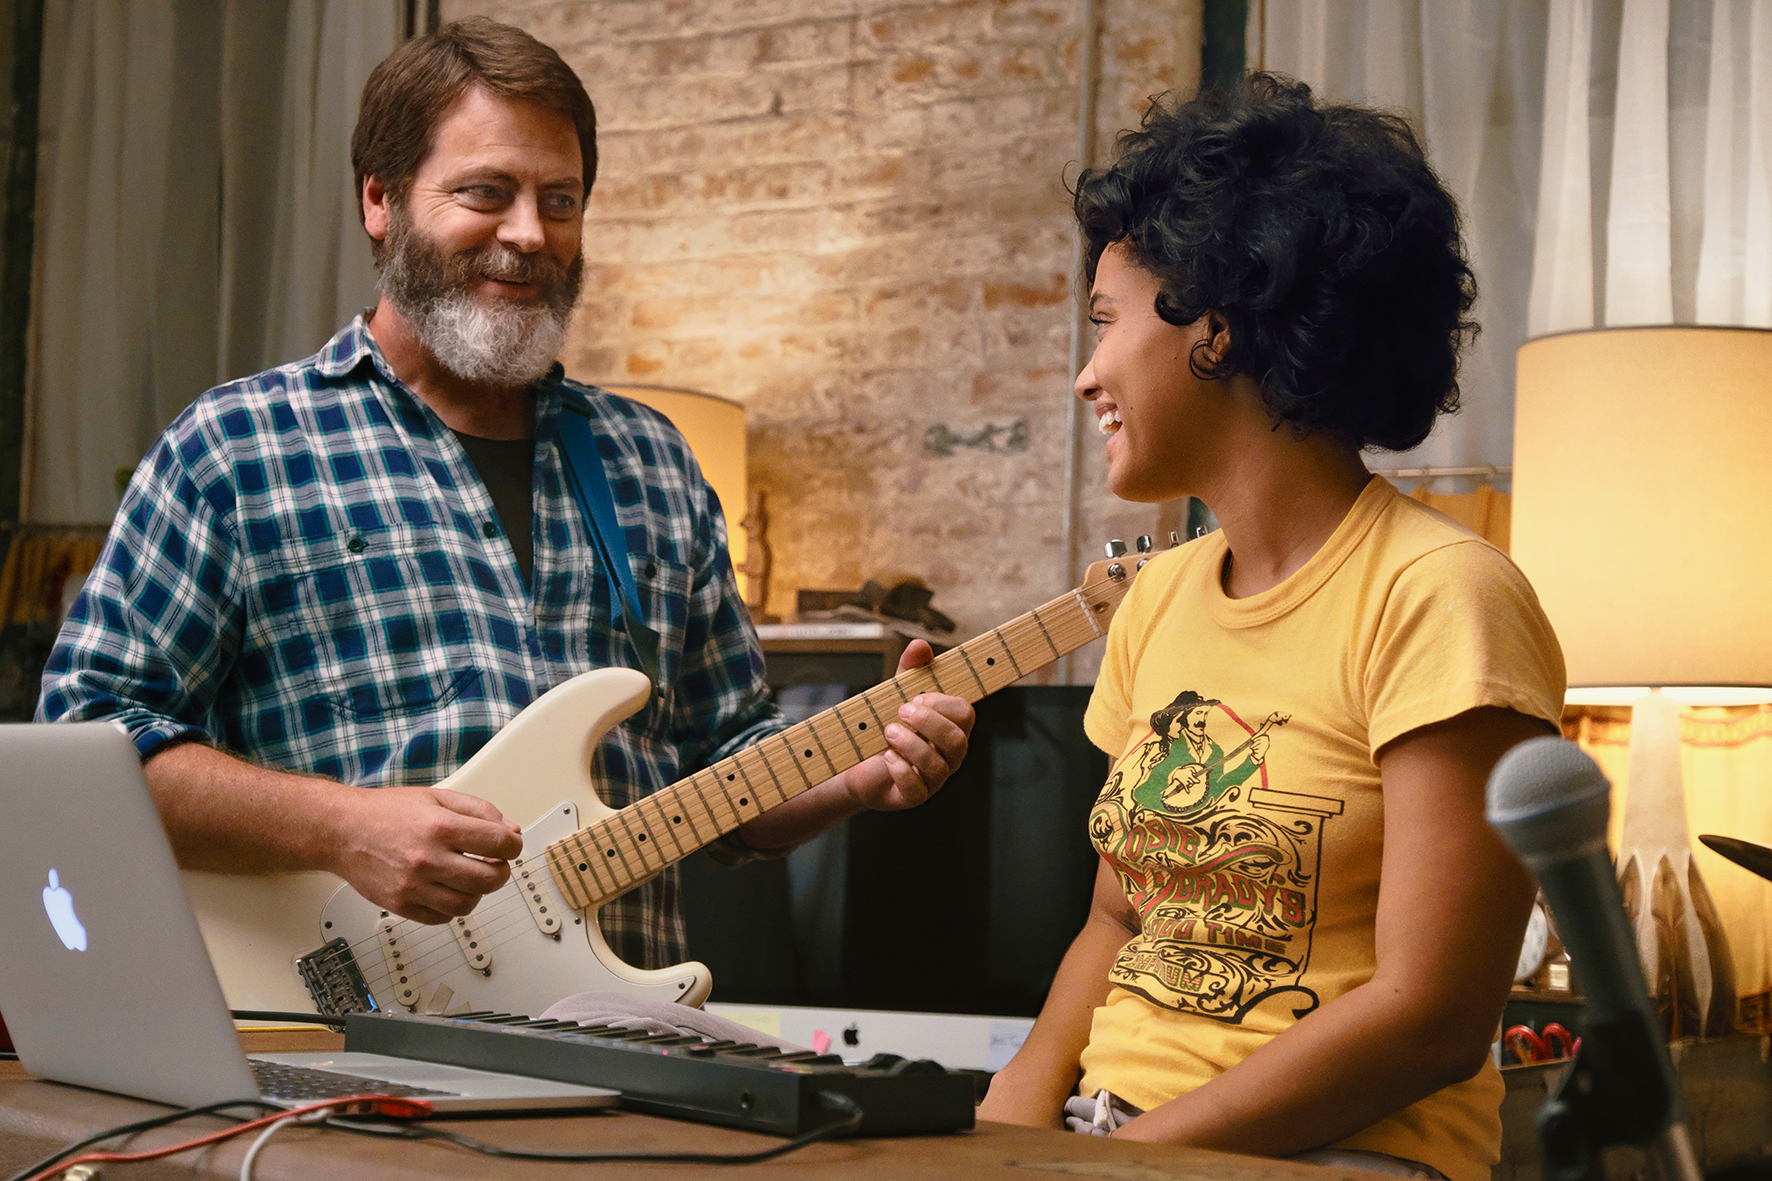 Nick Offerman and Kiersey Clemons play music in Hearts Beat Loud